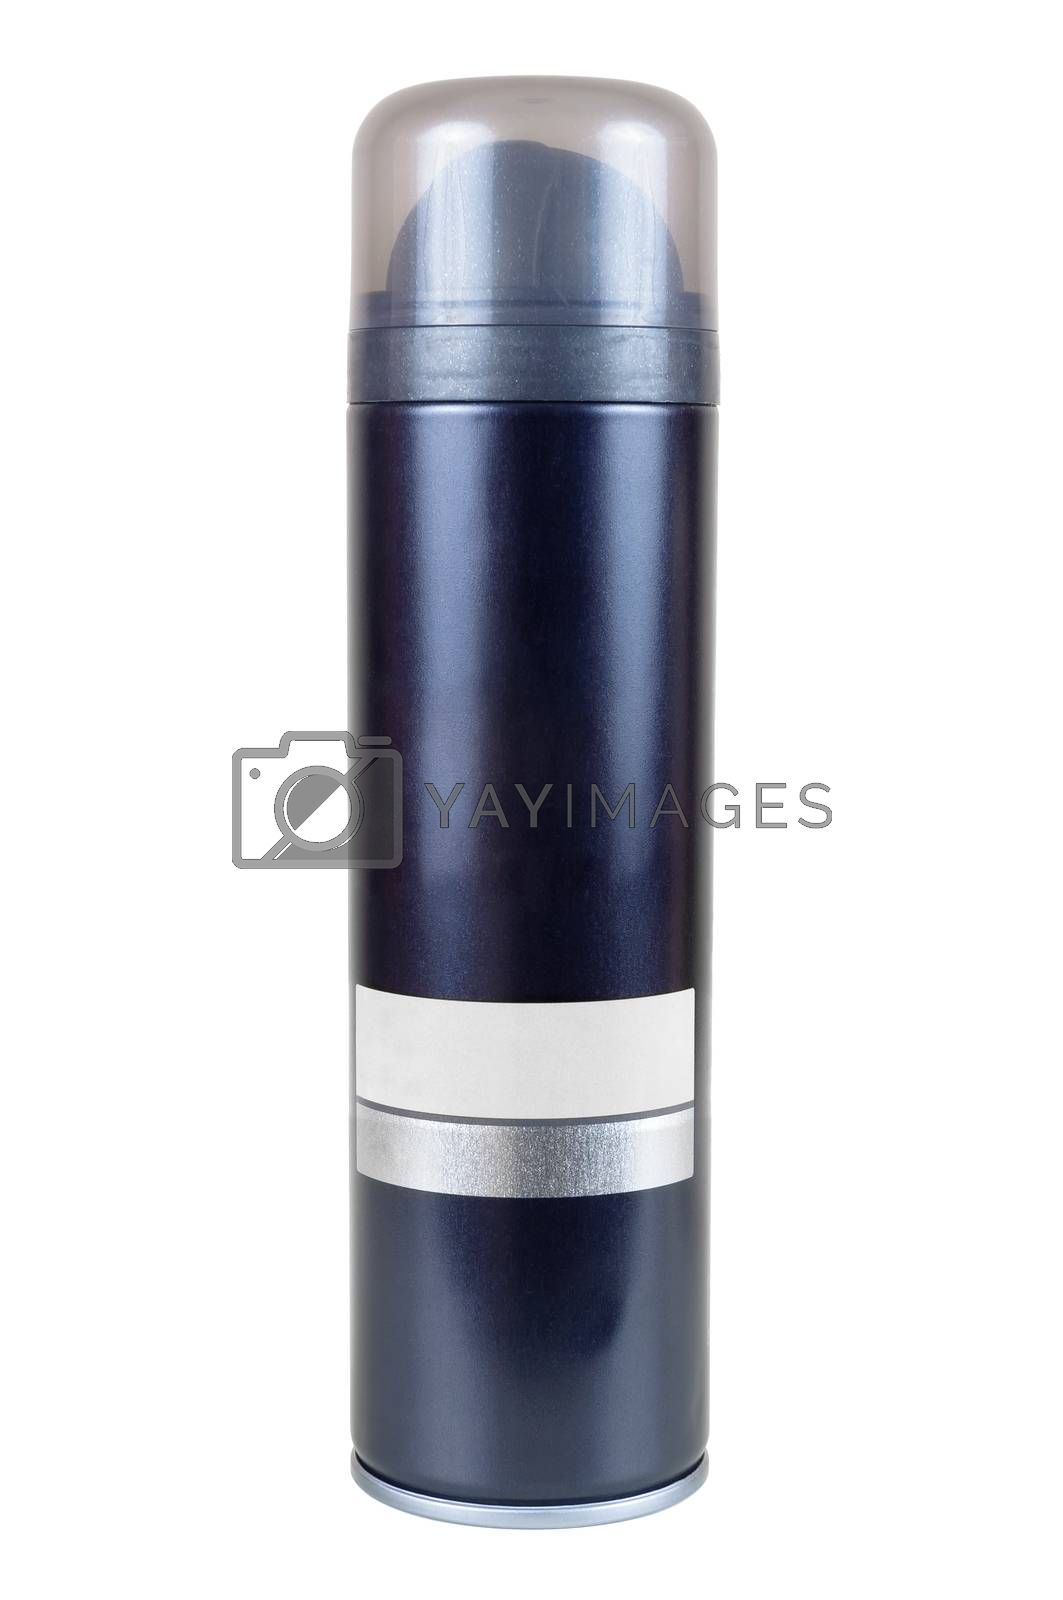 Can for shaving foam or gel isolated on white background with clipping path